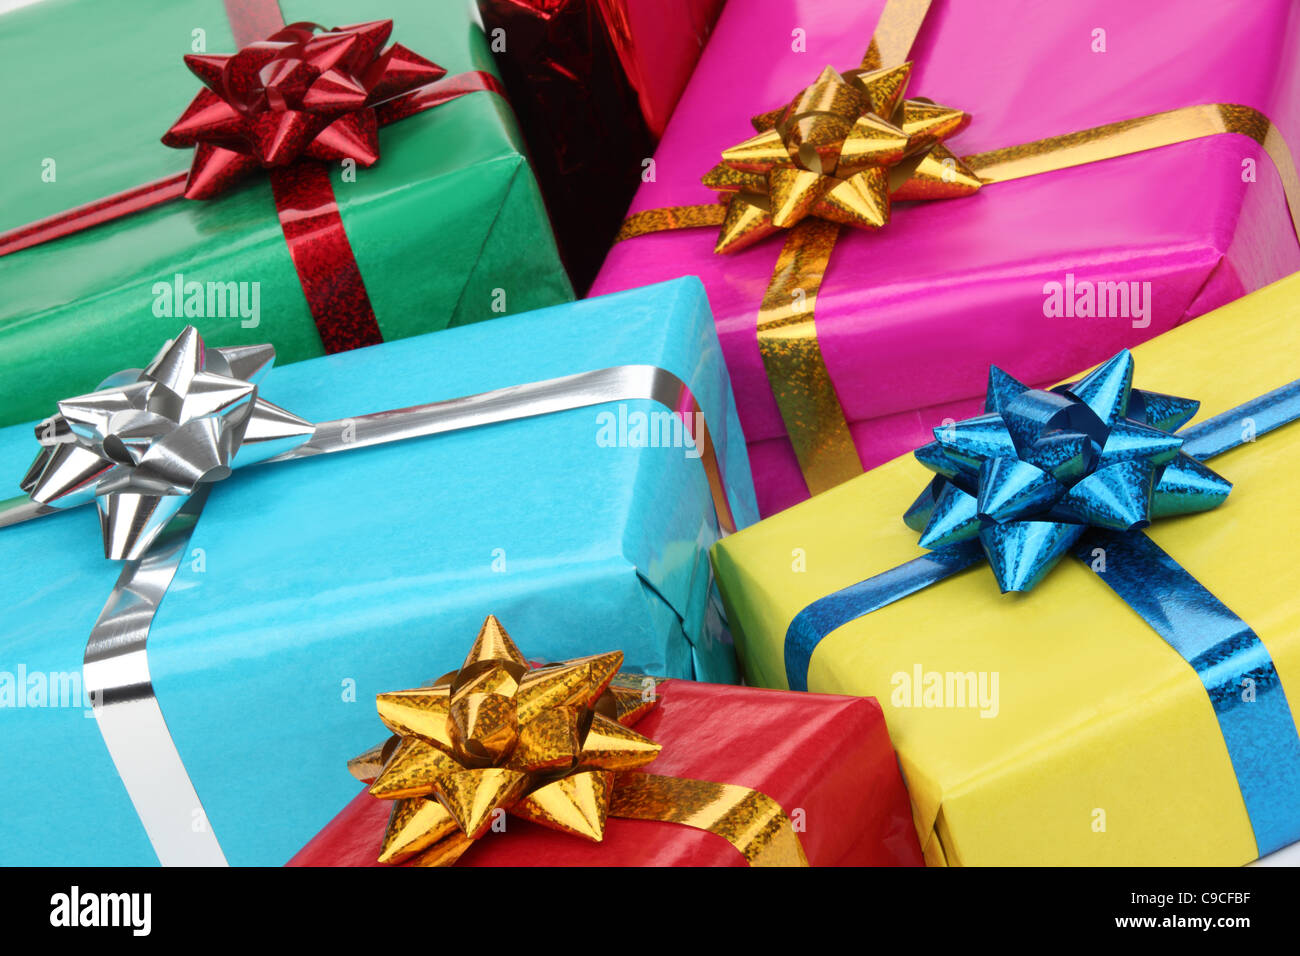 Closeup of colorful gifts boxes. - Stock Image